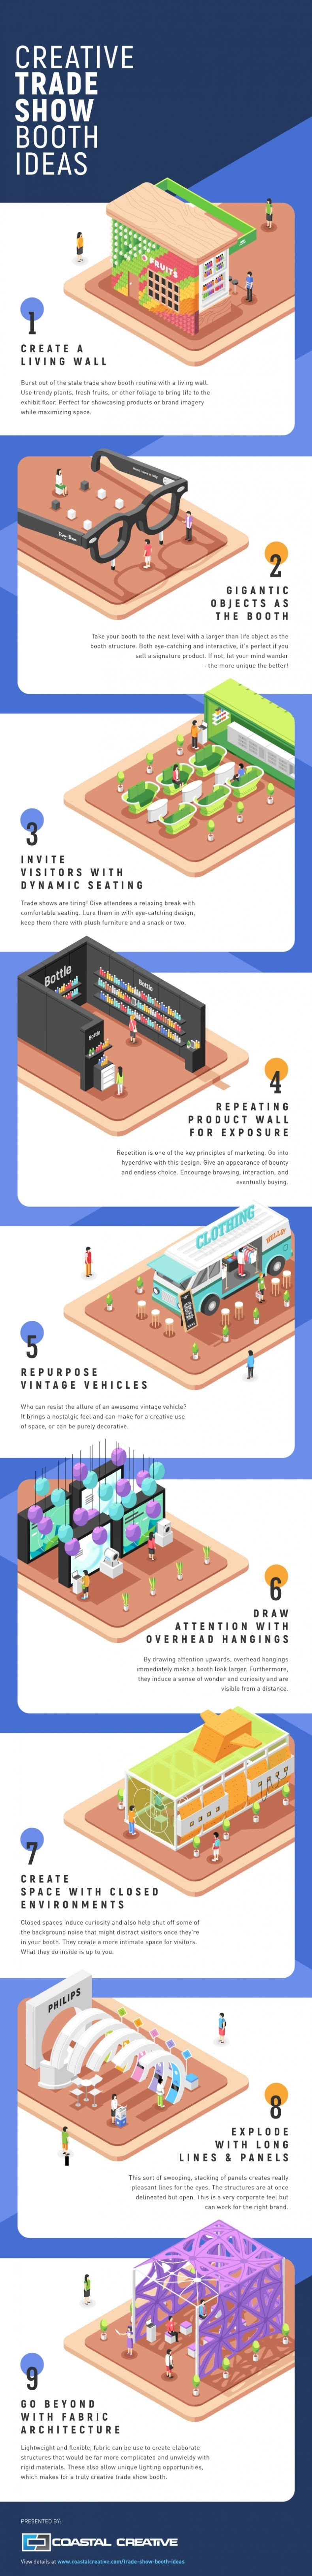 Creative Trade Show Booth Ideas #infographic #Business #trading